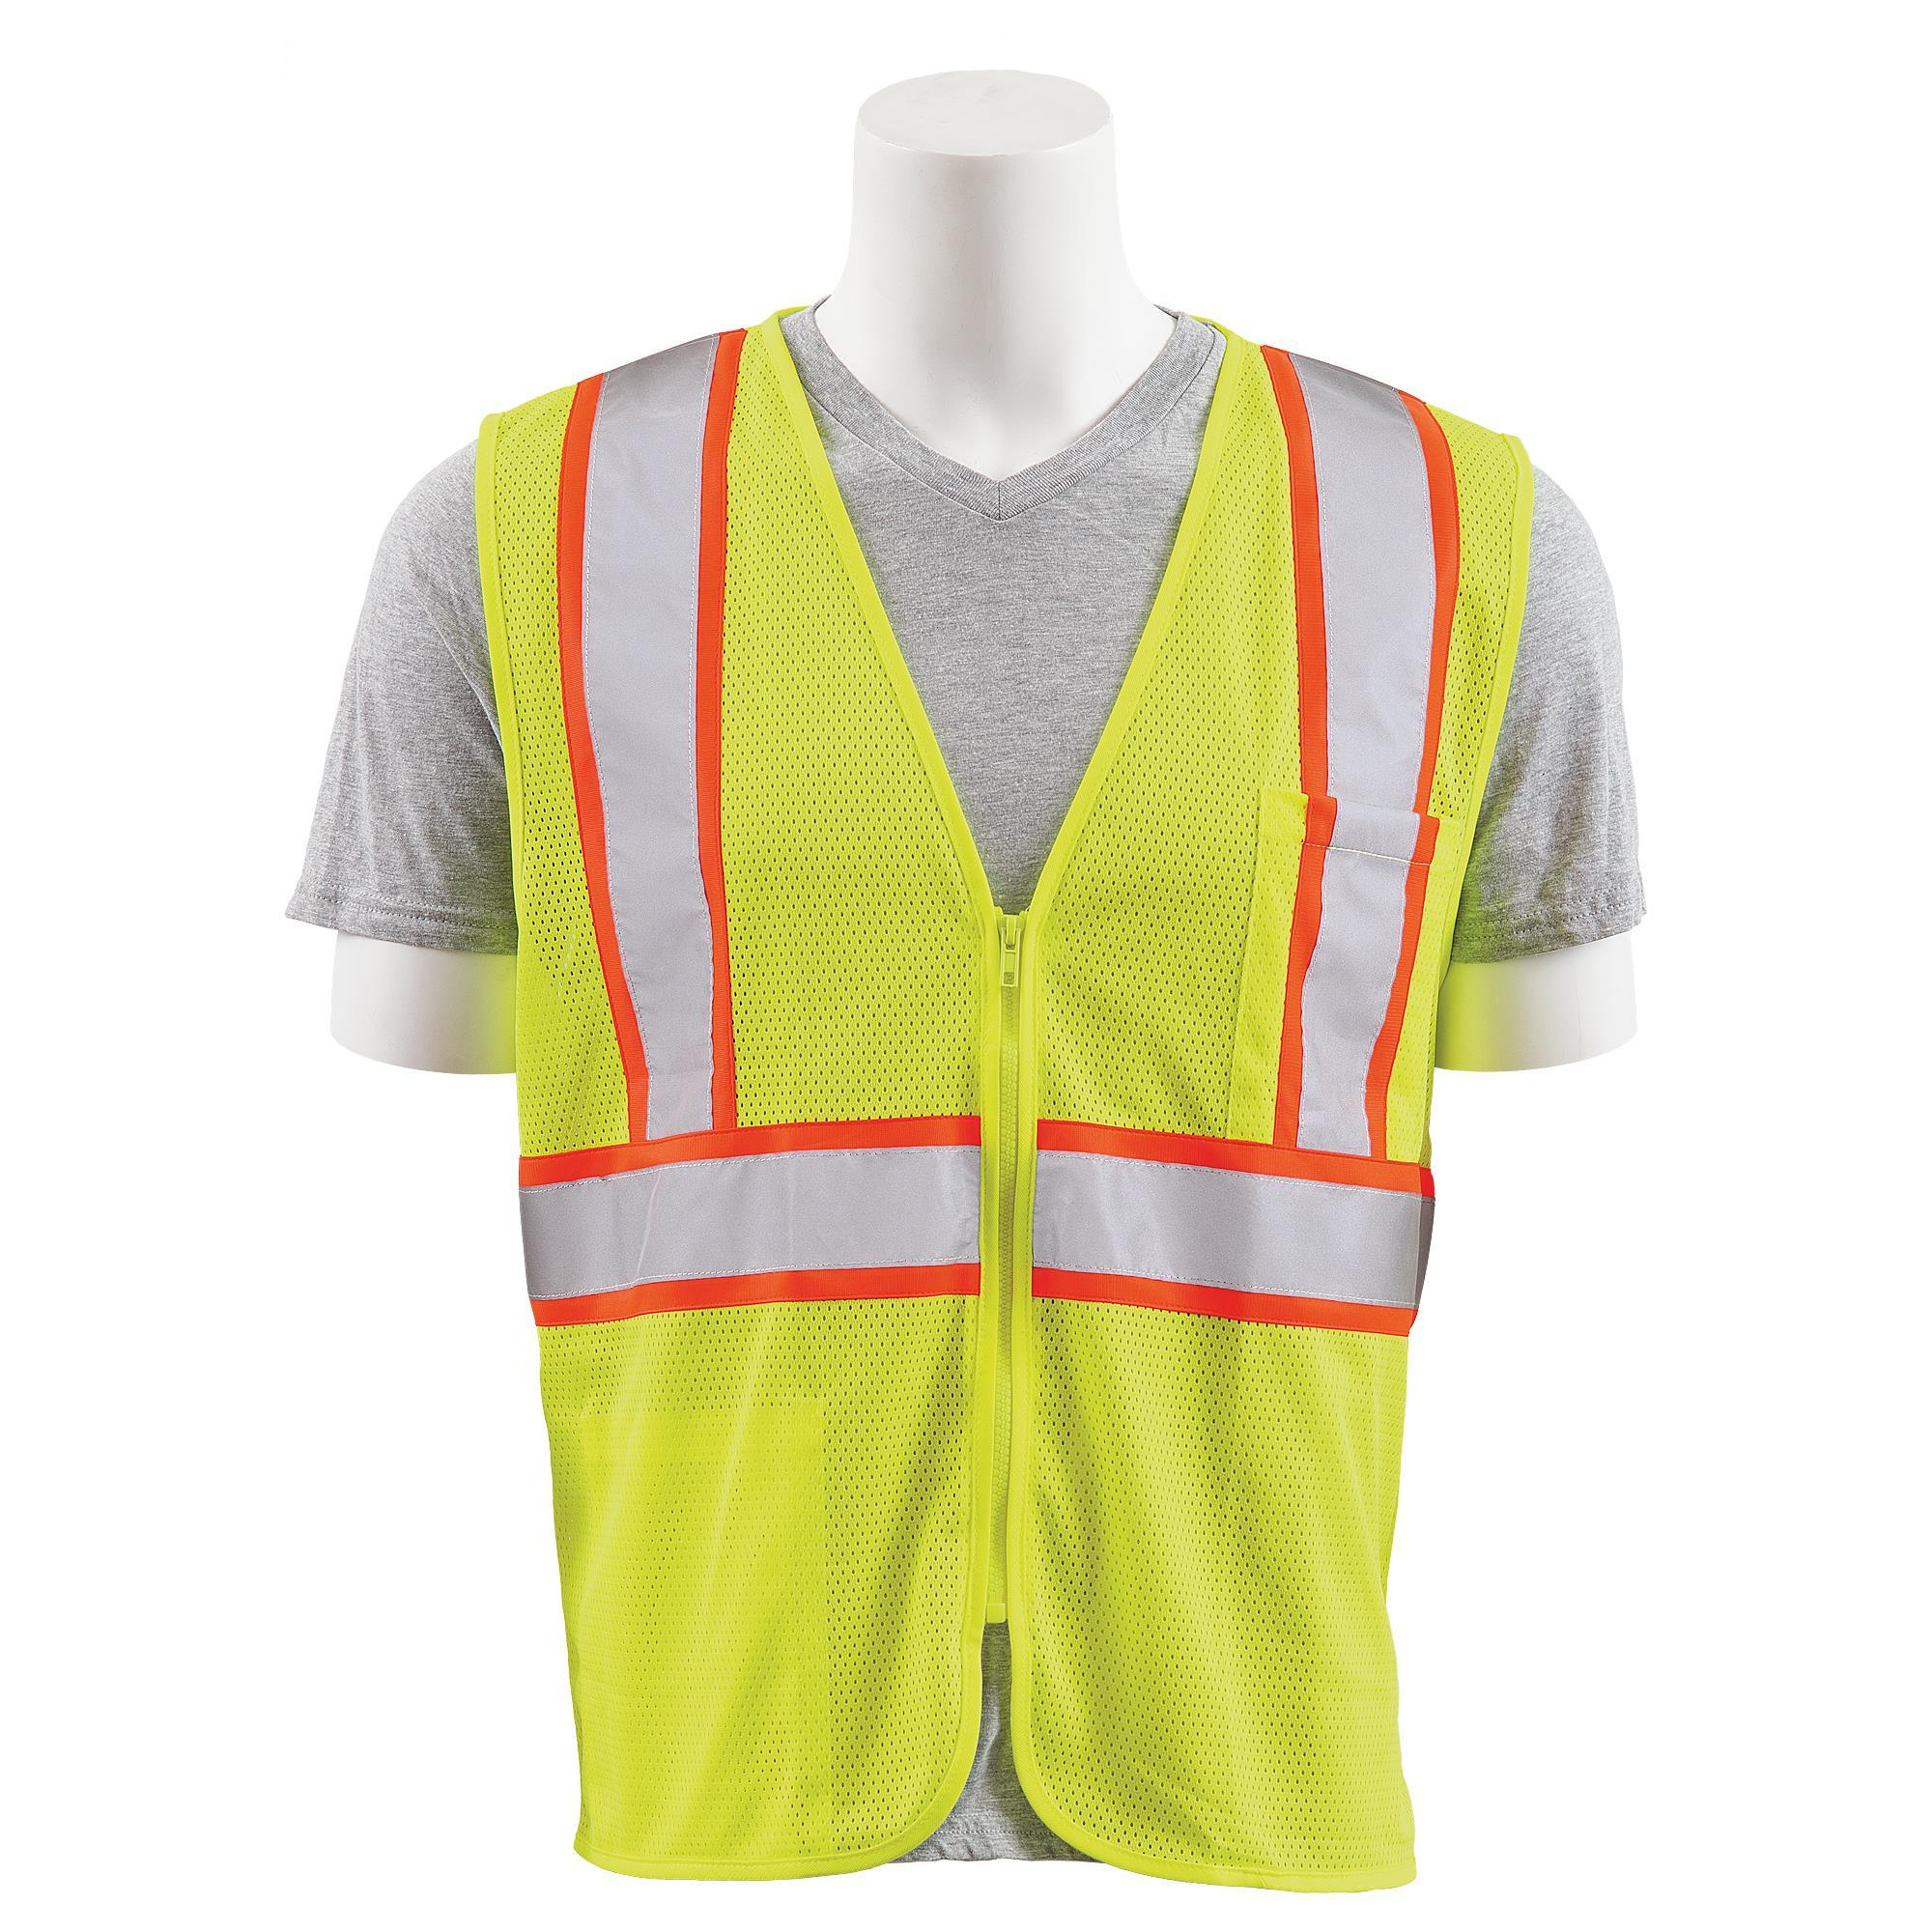 S195C Class 2 Flame Retardant Treated Safety Vest 1PC